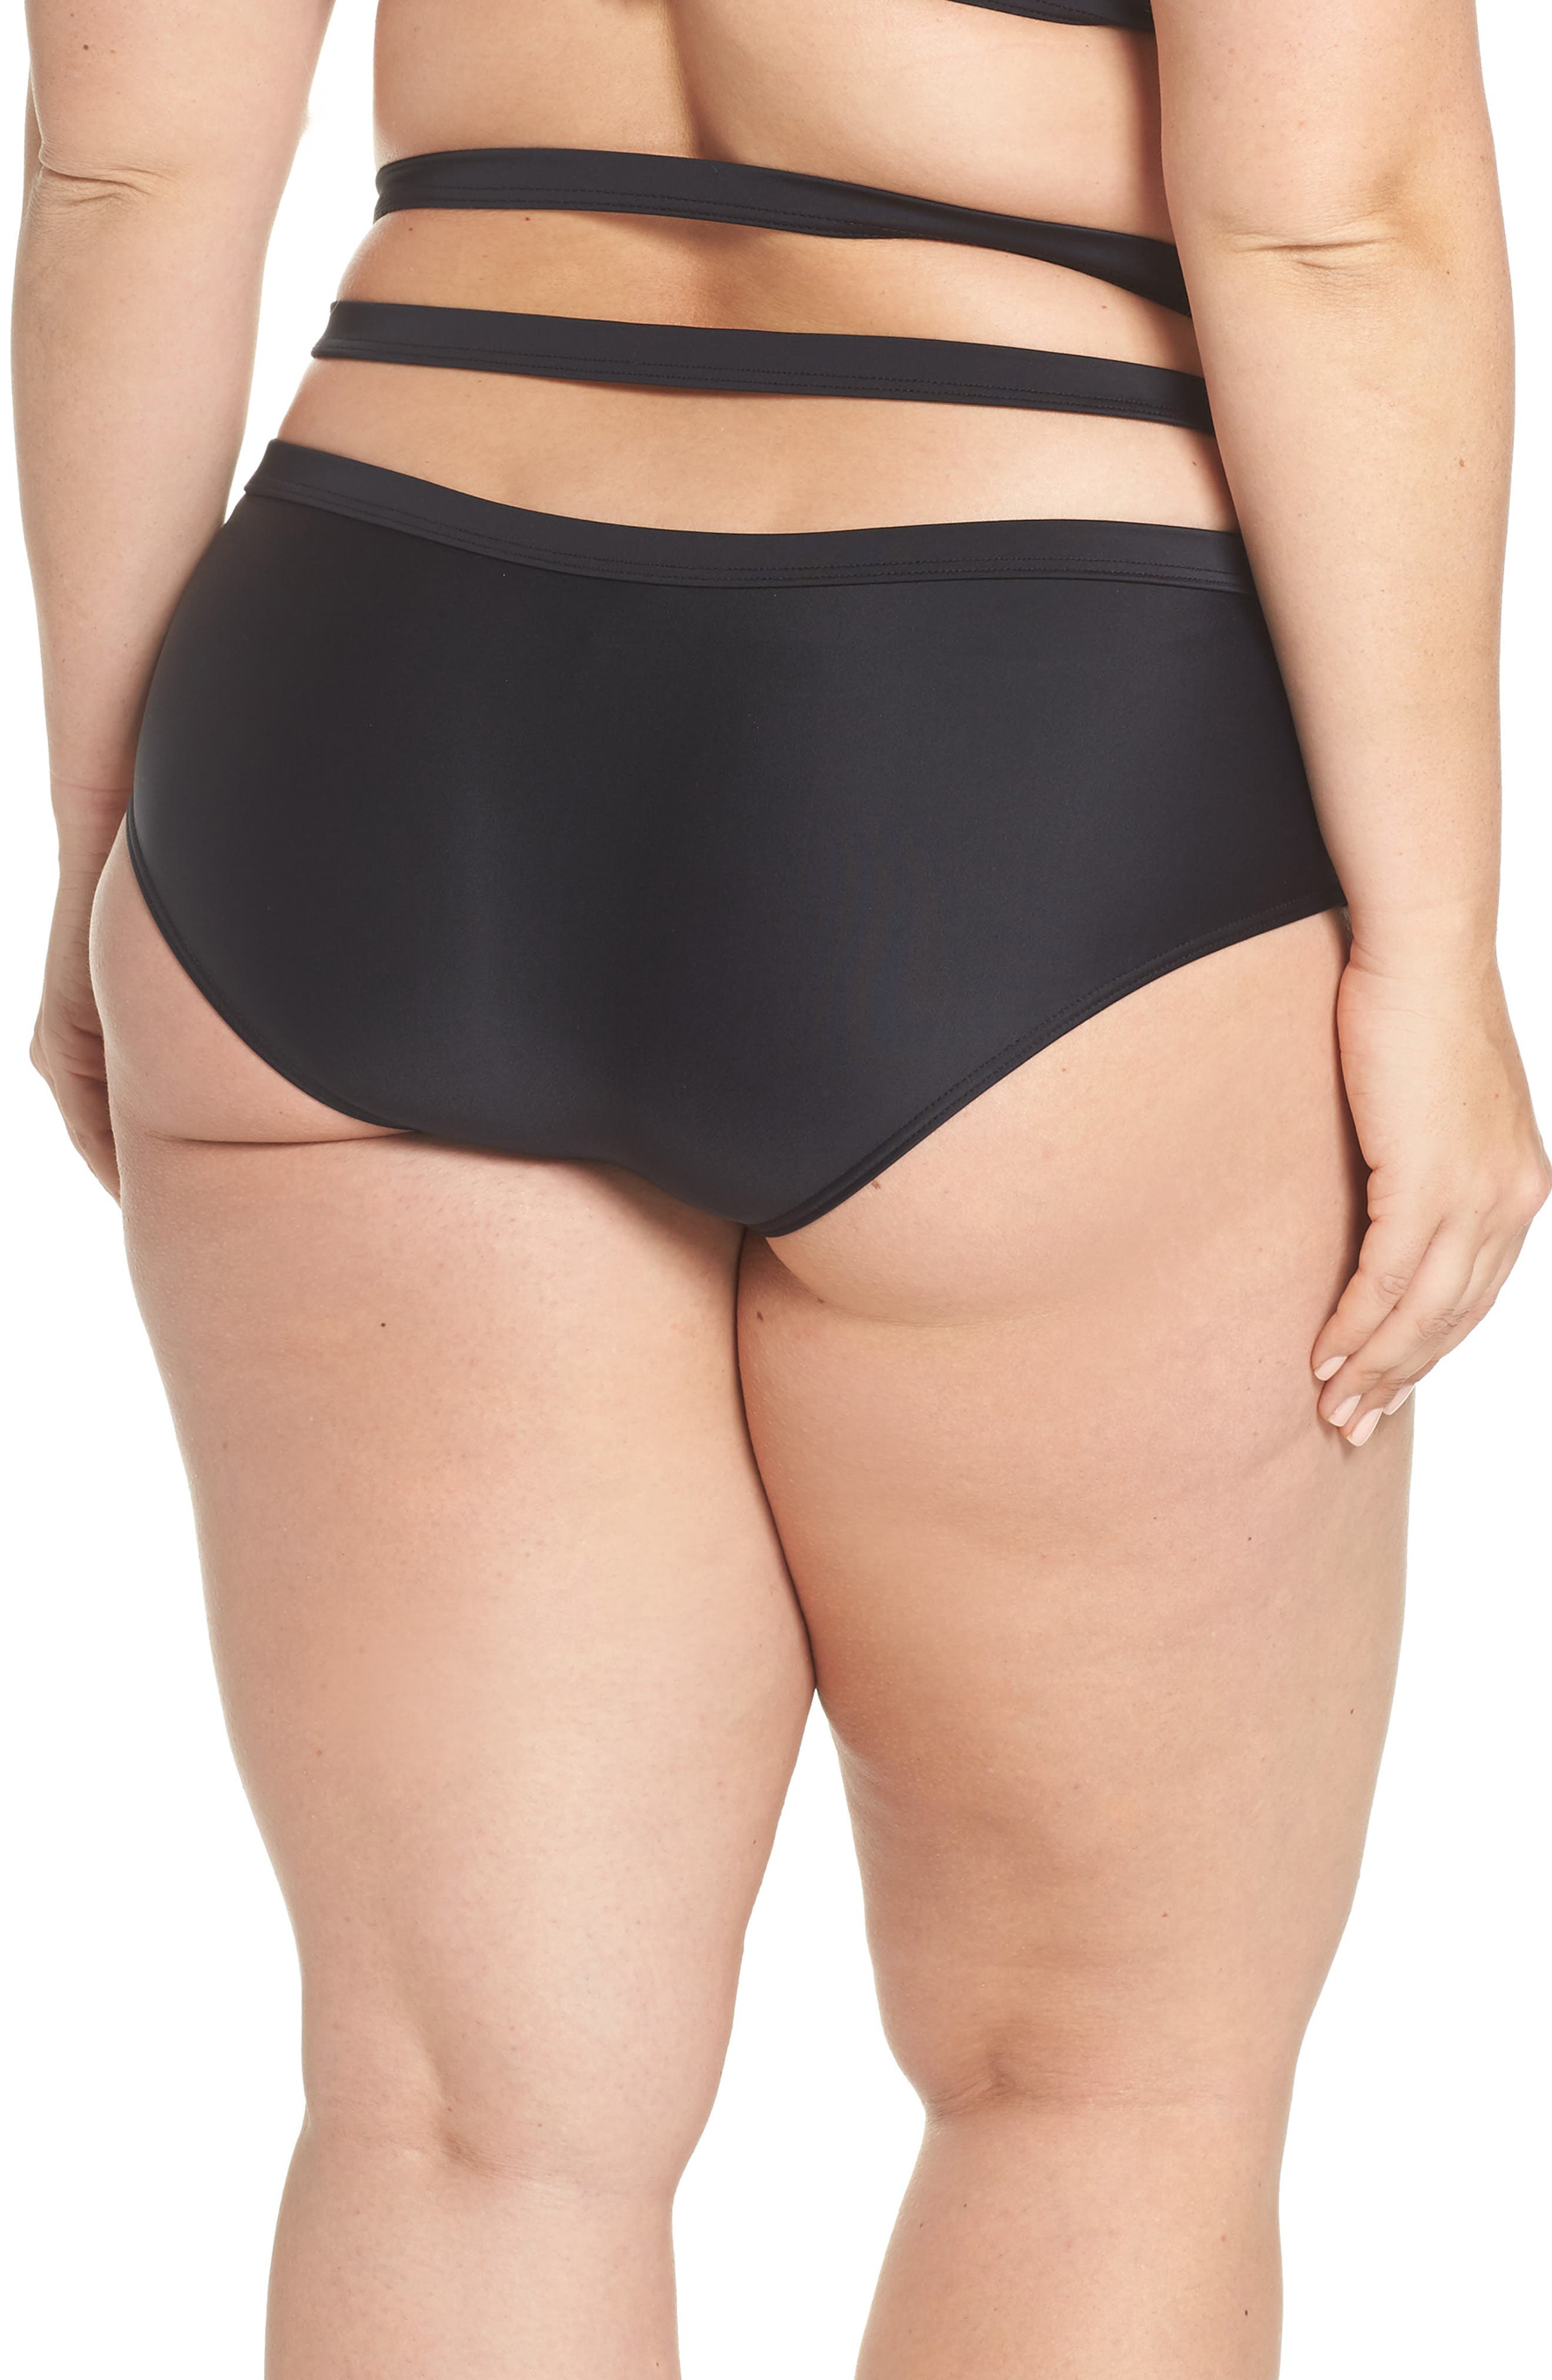 Bouloux II High Waist Bikini Bottoms,                             Alternate thumbnail 9, color,                             Black